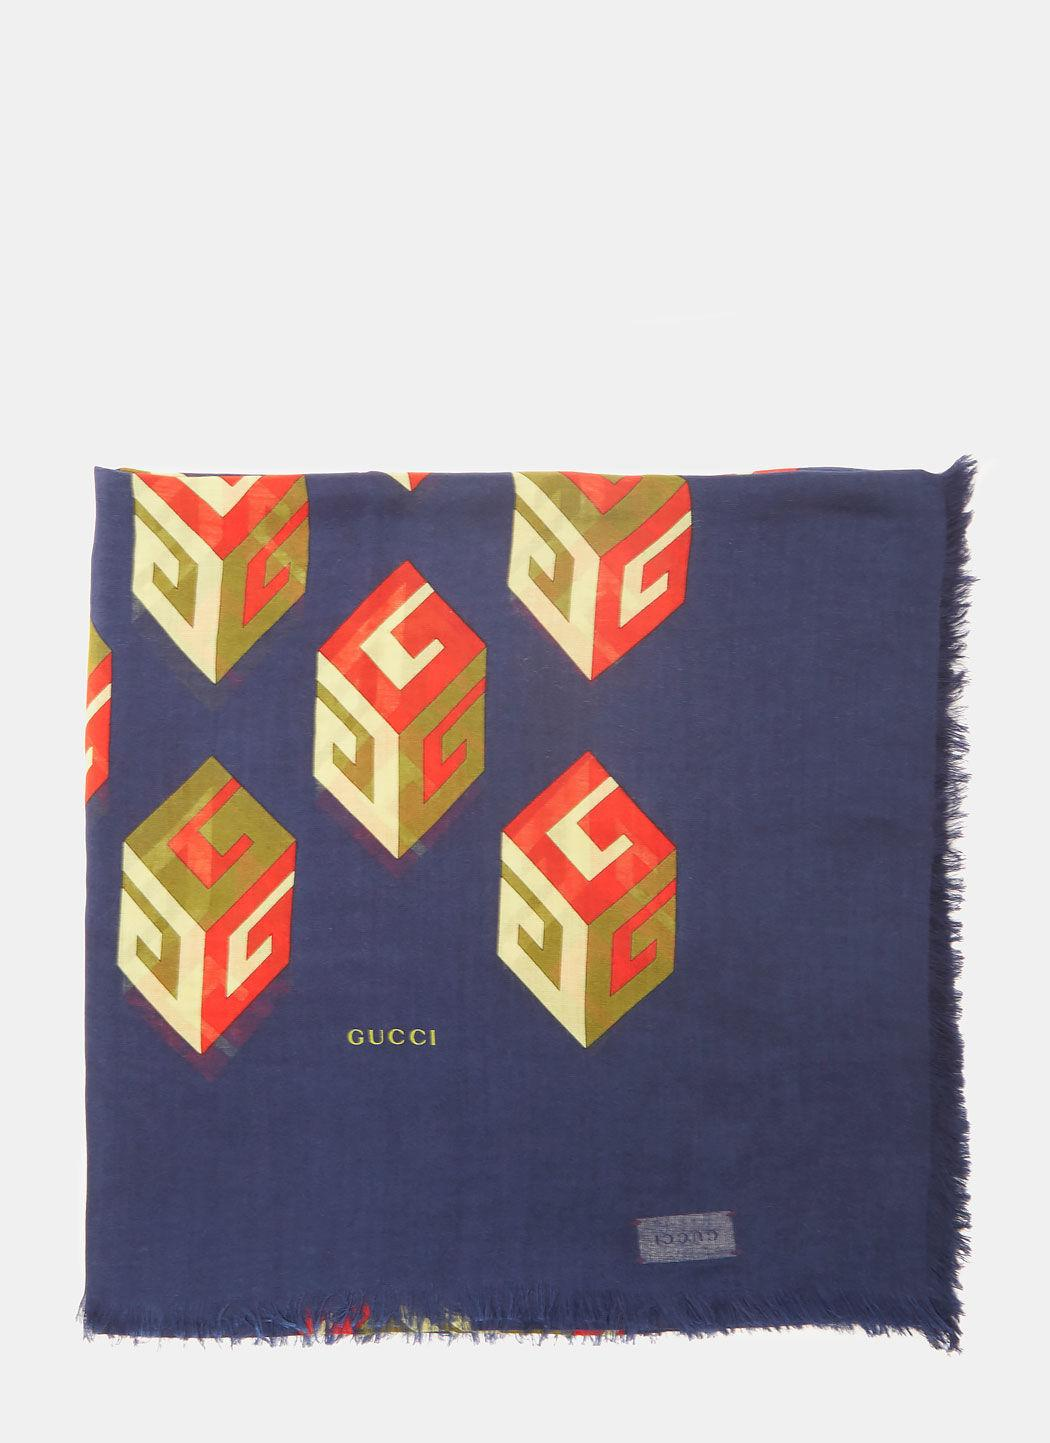 Gucci Gg Wallpaper Print Modal Silk Shawl In Blue In Navy